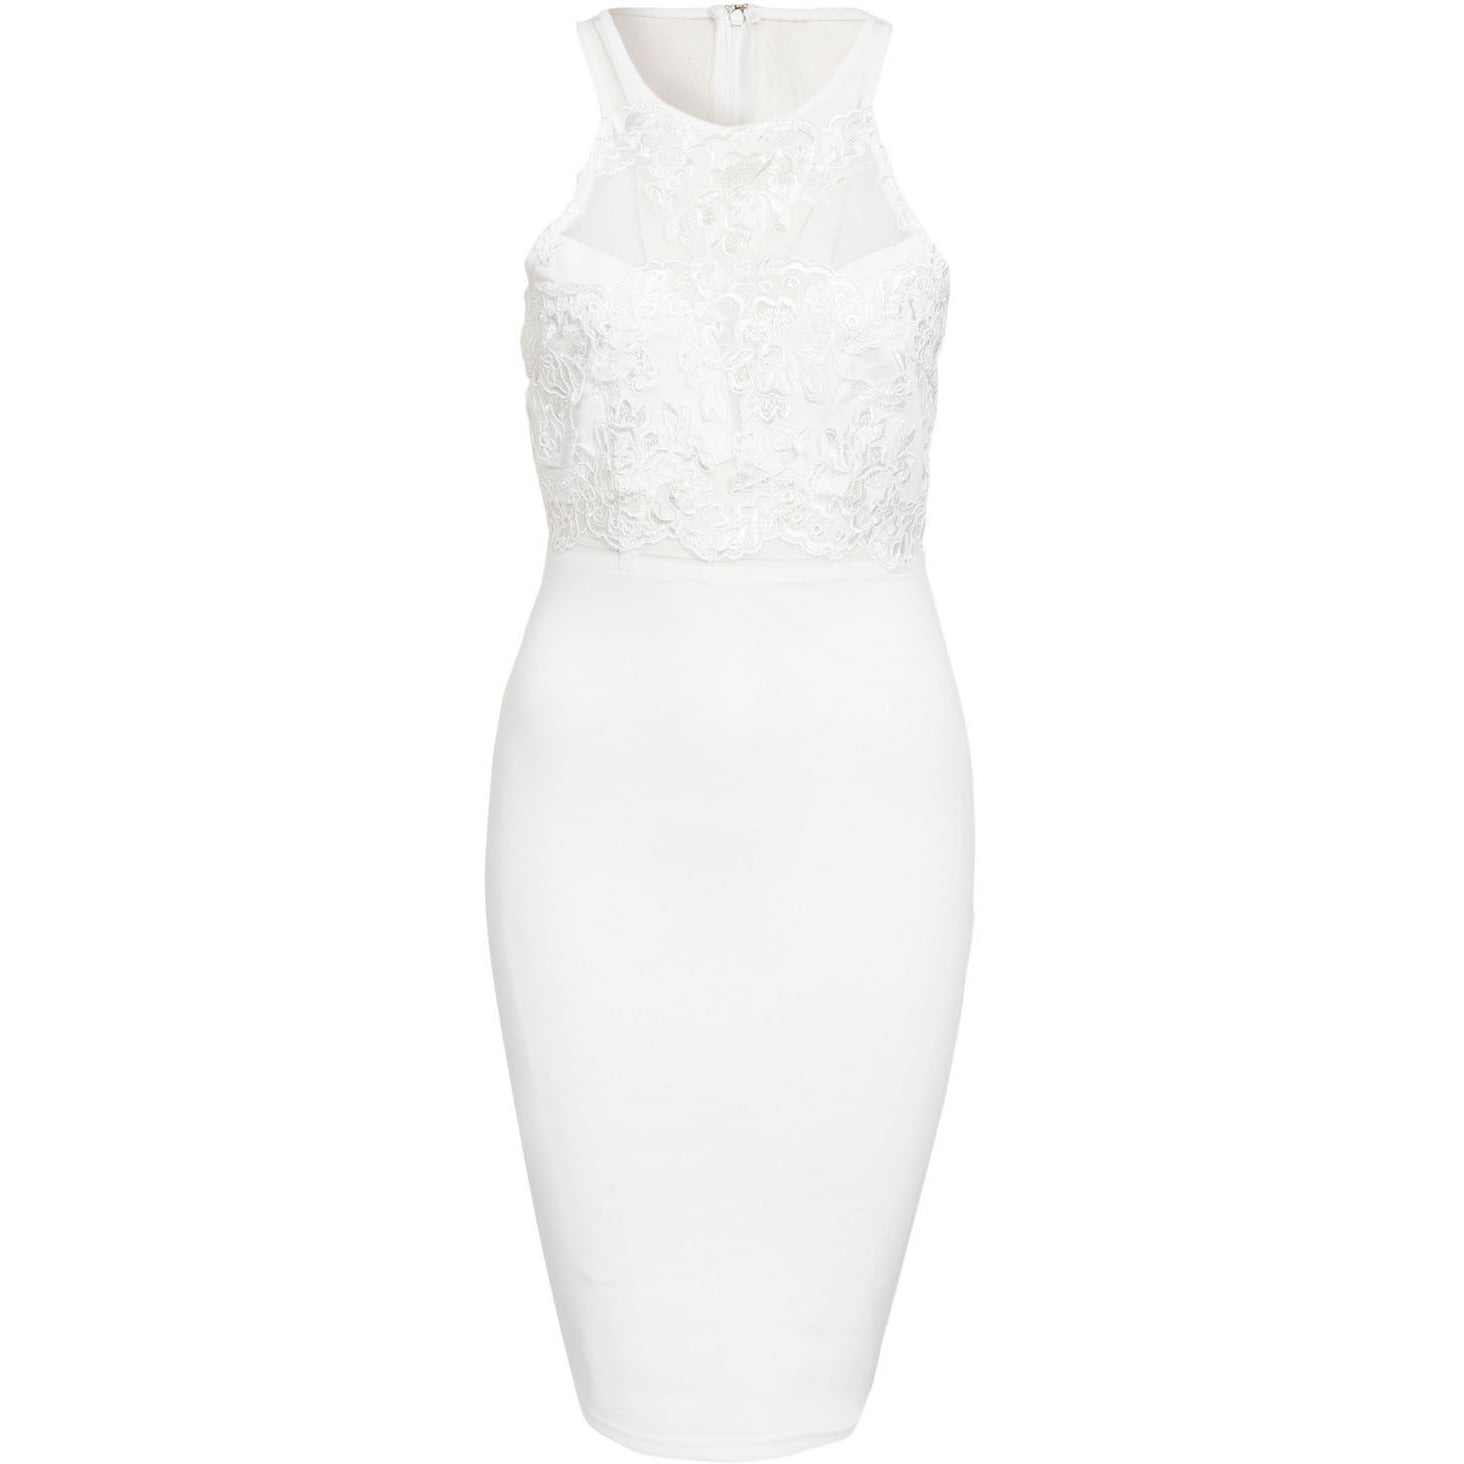 White Top Sleeveless Midi Dress Sale LAVELIQ - LAVELIQ - 3